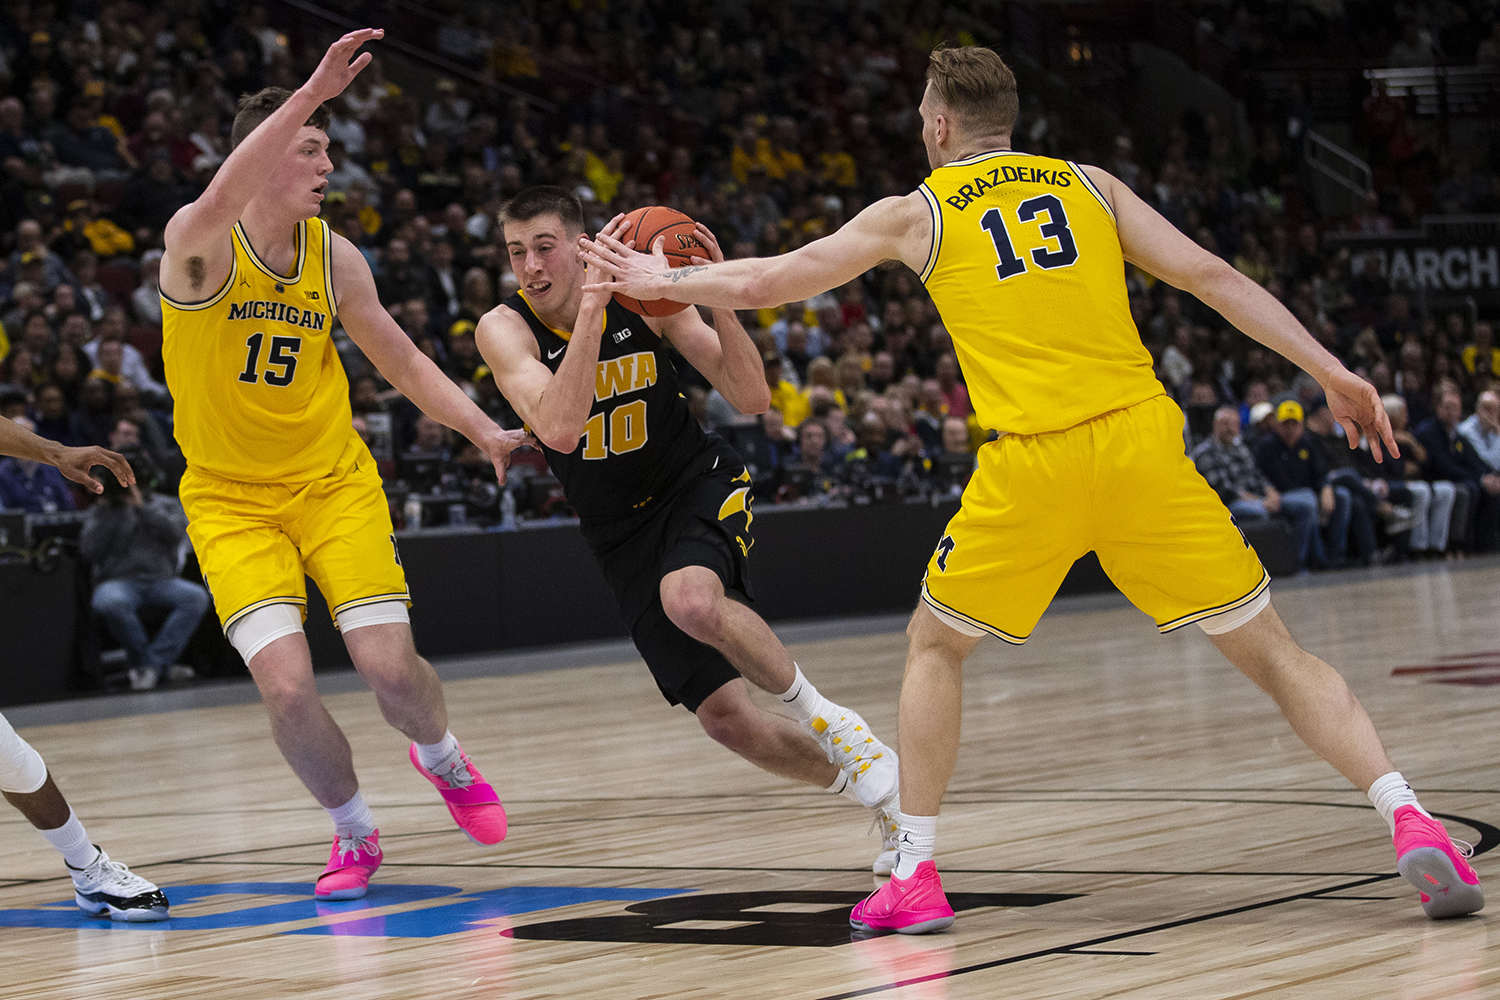 Iowa+guard+Joe+Wieskamp+drives+to+the+basket+during+the+Iowa%2FMichigan+Big+Ten+Tournament+men%27s+basketball+game+in+the+United+Center+in+Chicago+on+Friday%2C+March+15%2C+2019.+The+Wolverines+defeated+the+Hawkeyes%2C+74-53.+